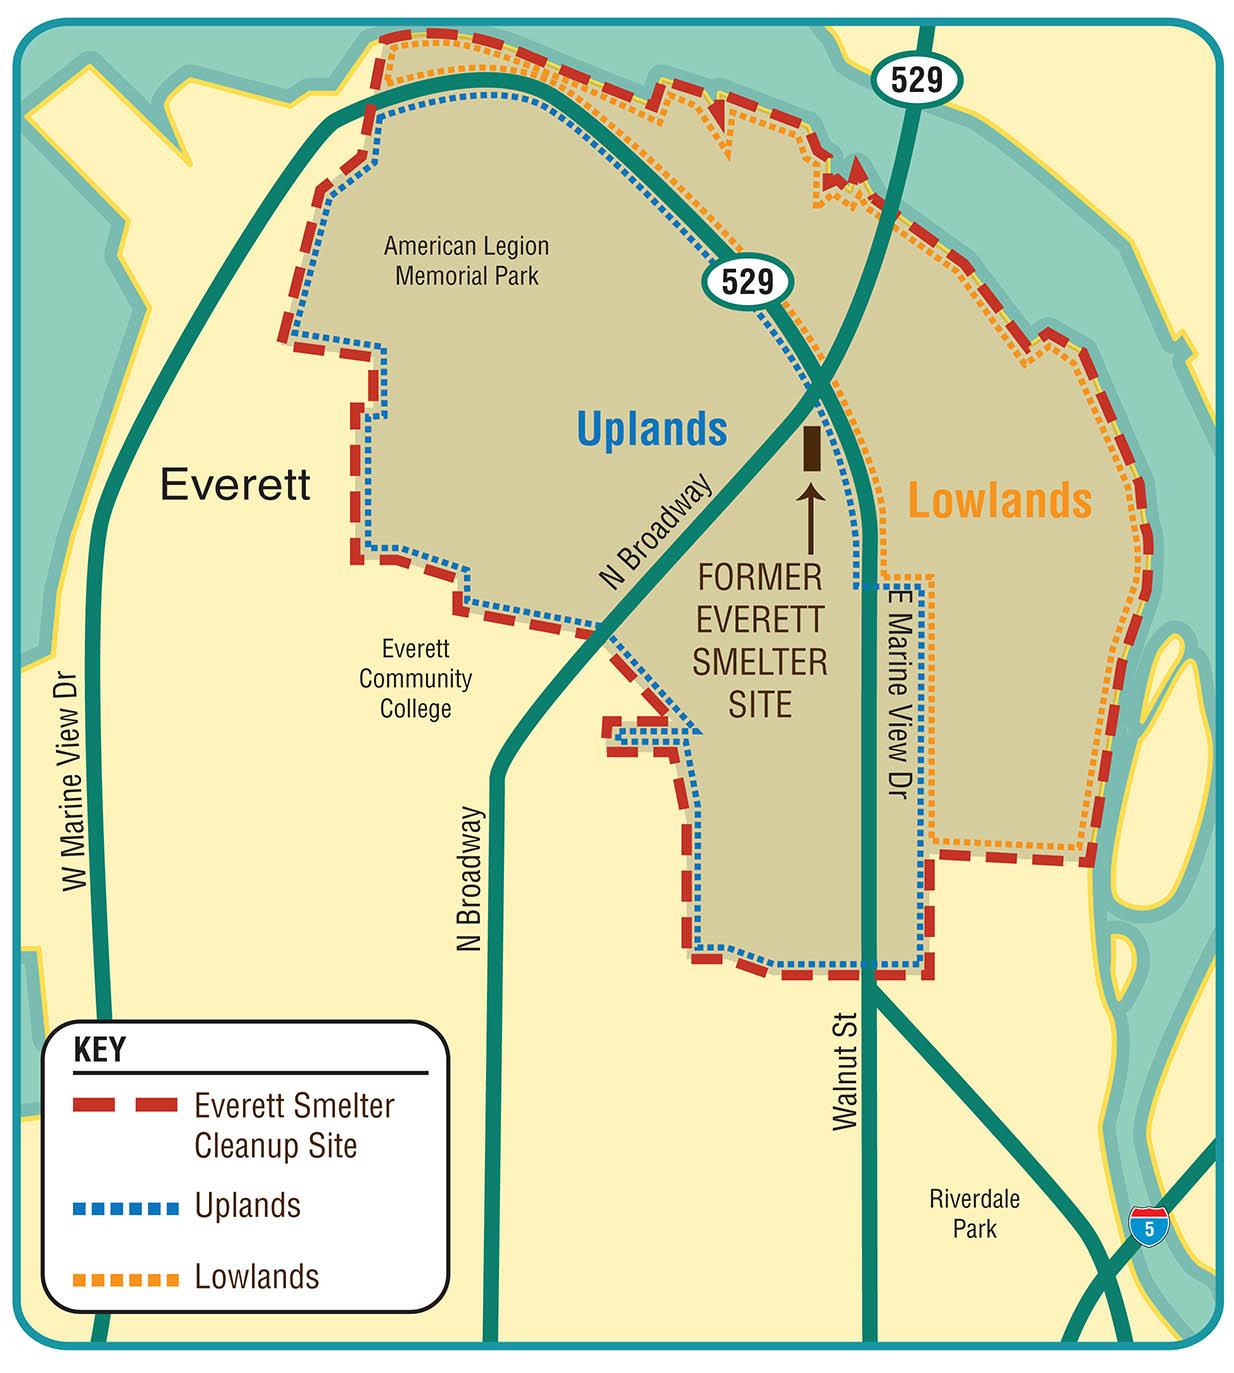 Map of the Everett Smelter cleanup area, showing the overall site boundary, the uplands and lowlands boundaries, and the footprint of the former smelter facility.